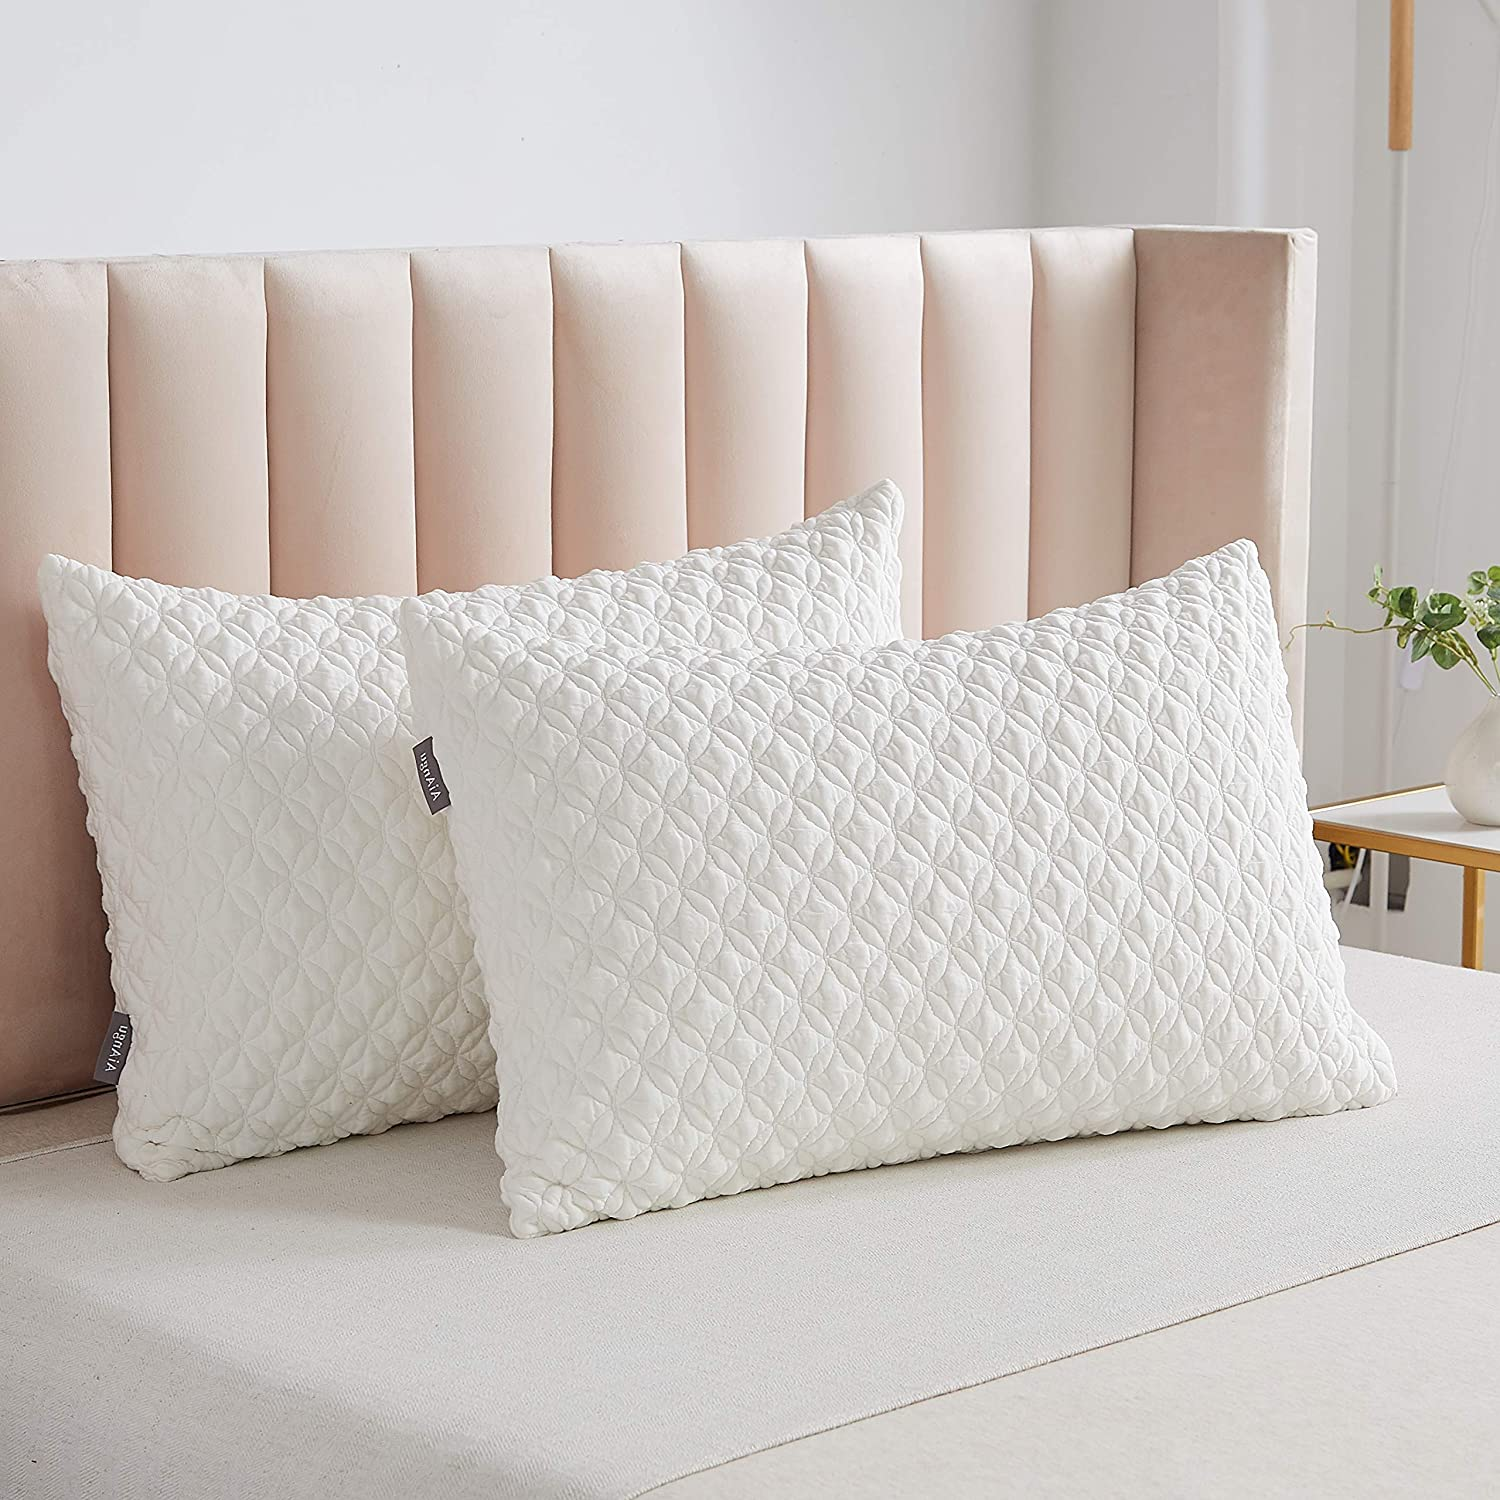 SONORO KATE Foam Pillow for Sleeping Shredded Bed Bamboo Cooling Pillow with Adjustable Loft 3D Design Hypoallergenic Washable Removable Derived Rayon Zip Cover (White(1-Pack), King)